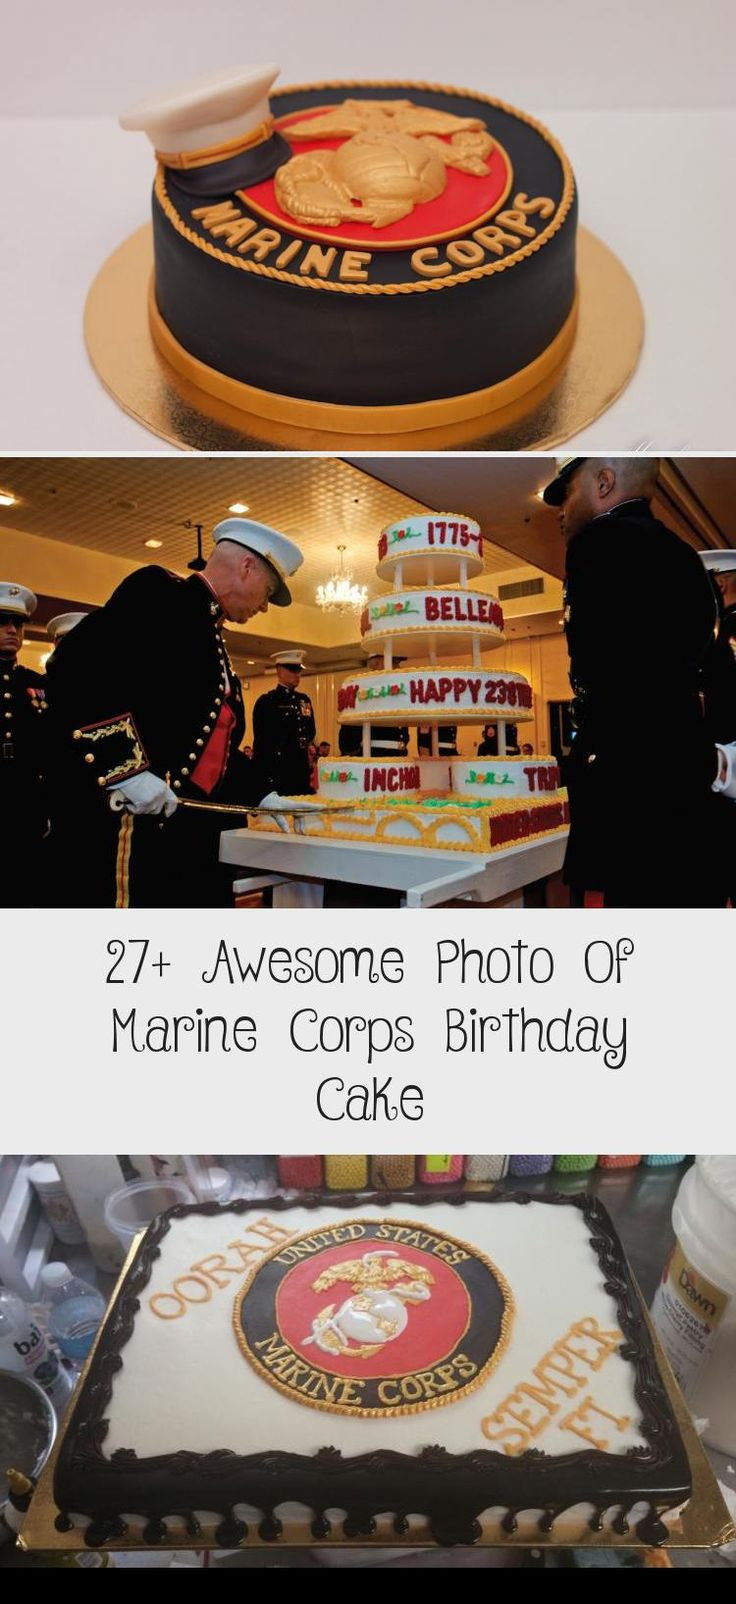 27+ Awesome Photo Of Marine Corps Birthday Cake Cake in